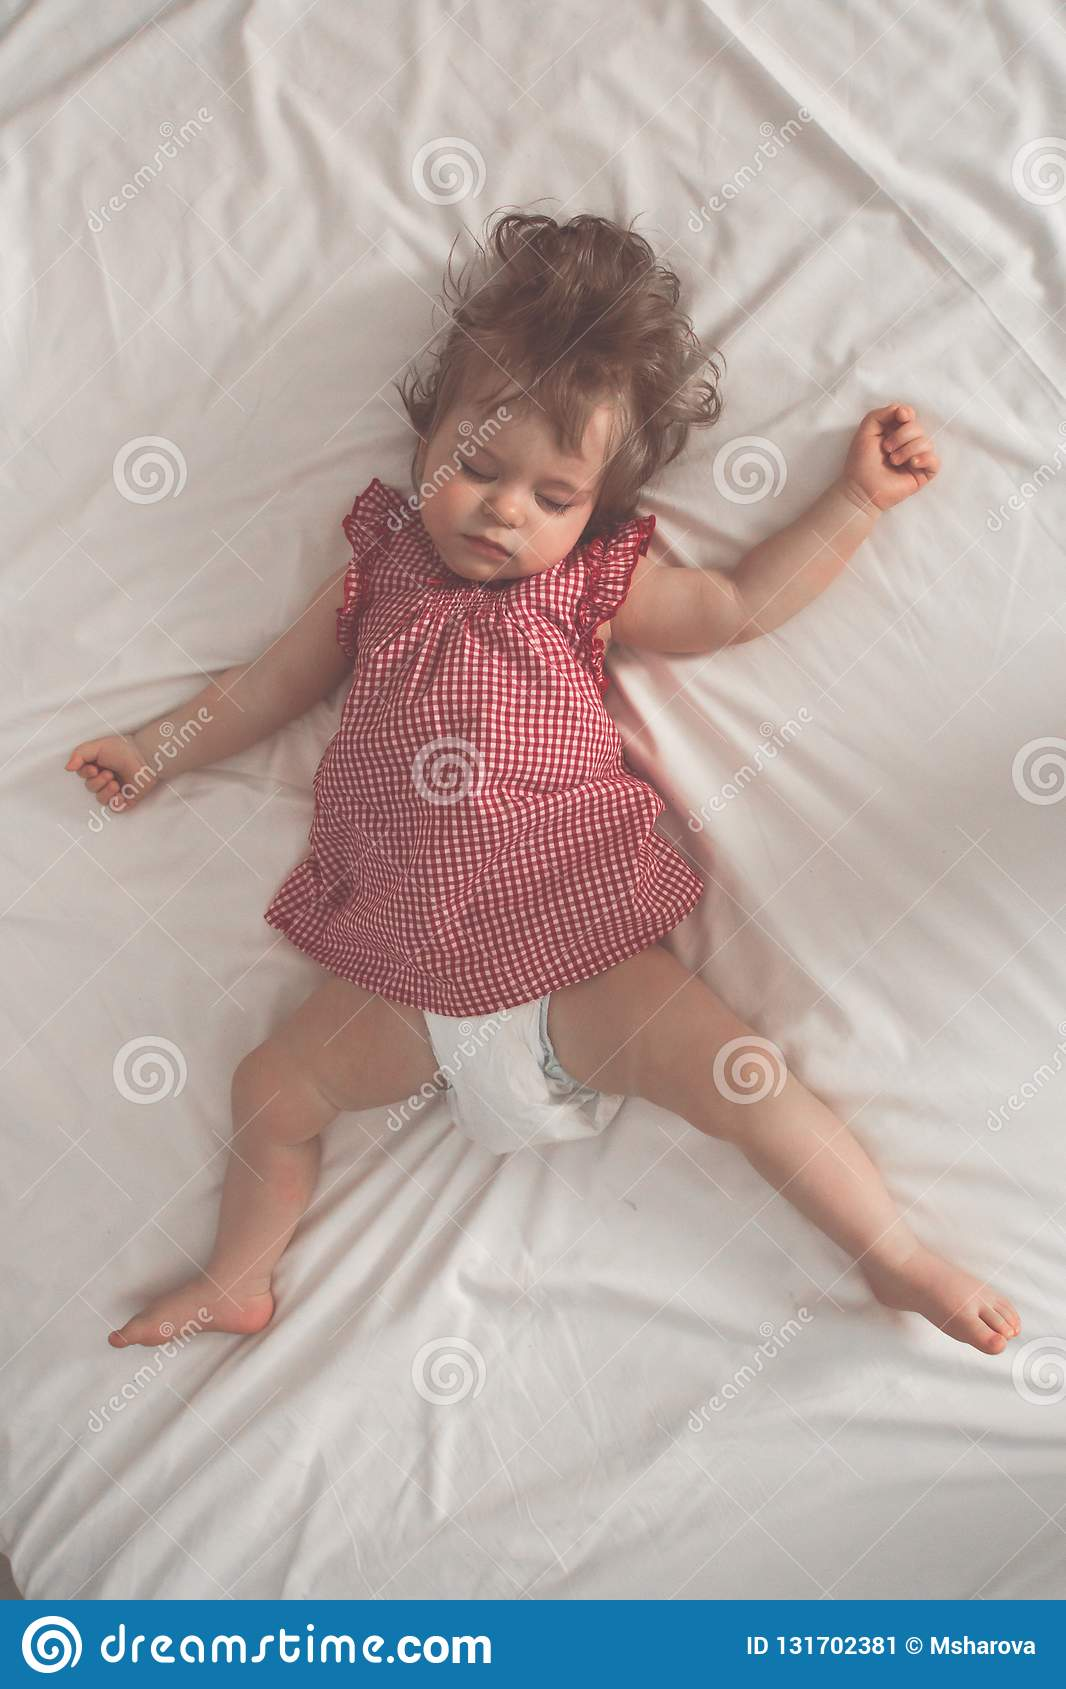 Baby girl sleeping on back with open arms and without pacifier in a bed with white sheets. Peaceful sleeping in a bright